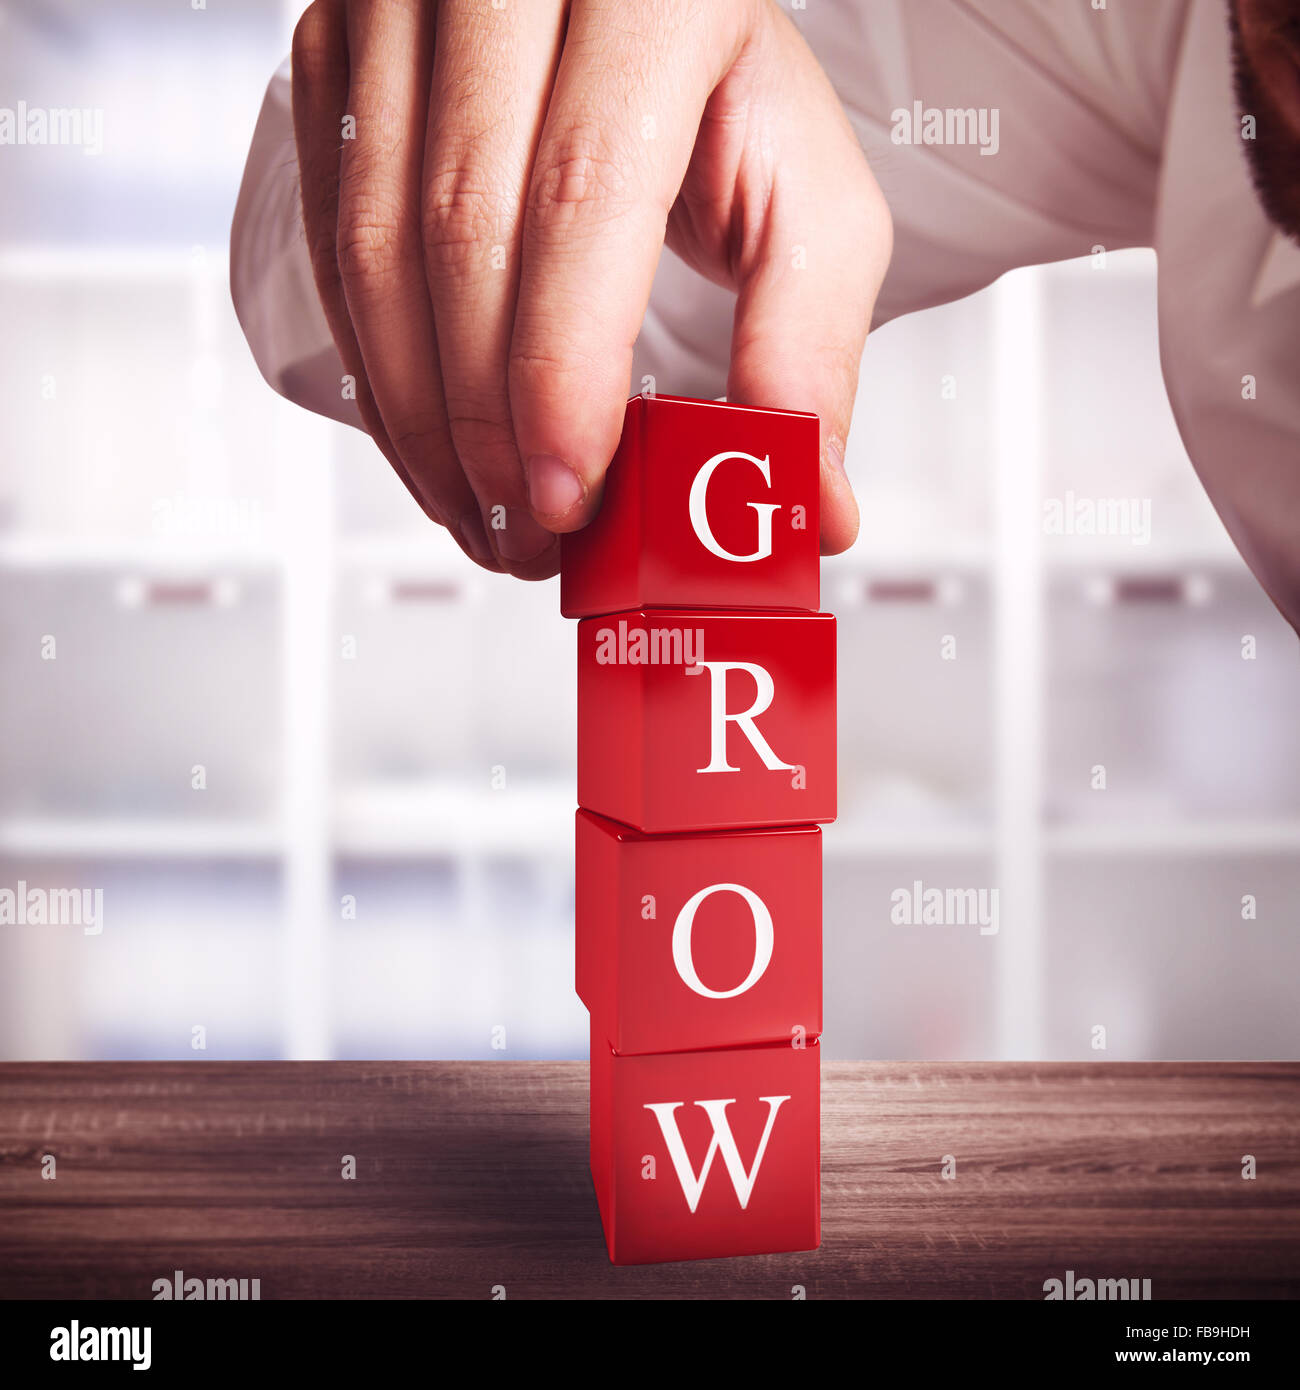 Construction growth - Stock Image